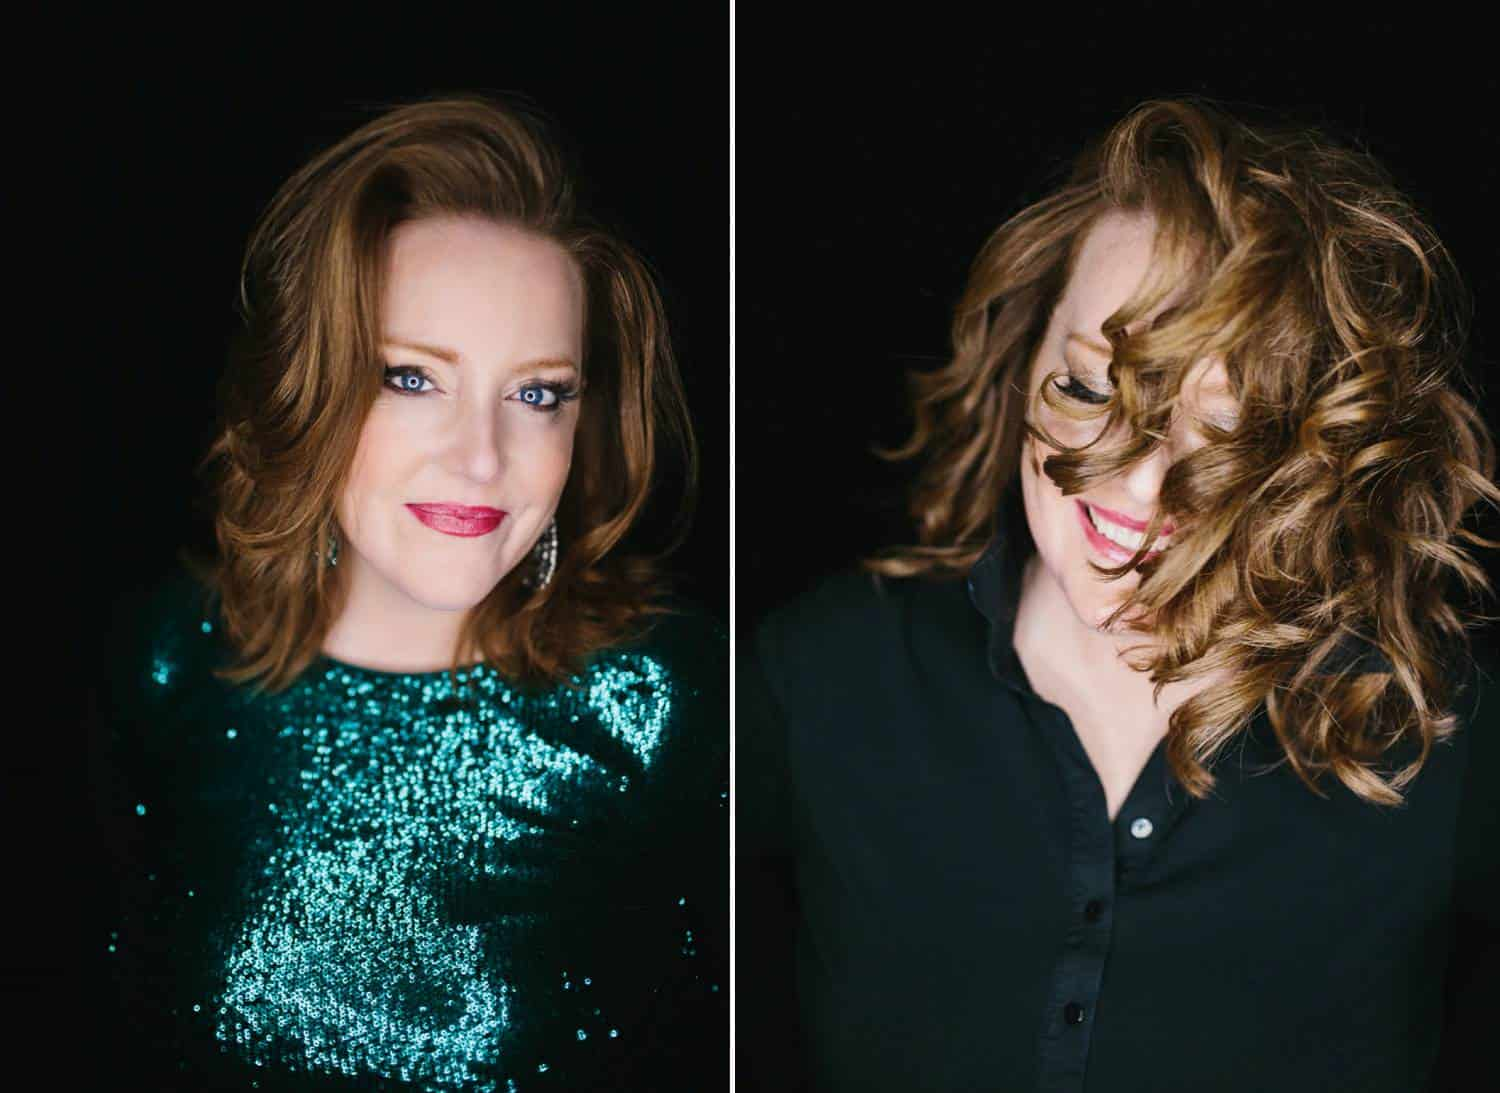 Two studio portraits depict the same woman with two looks. In the first looks, she's glamorously done-up with wavy hair and a green sequined dress. In the second shot, her hair is wildly curly and she wears a black cotton henley.